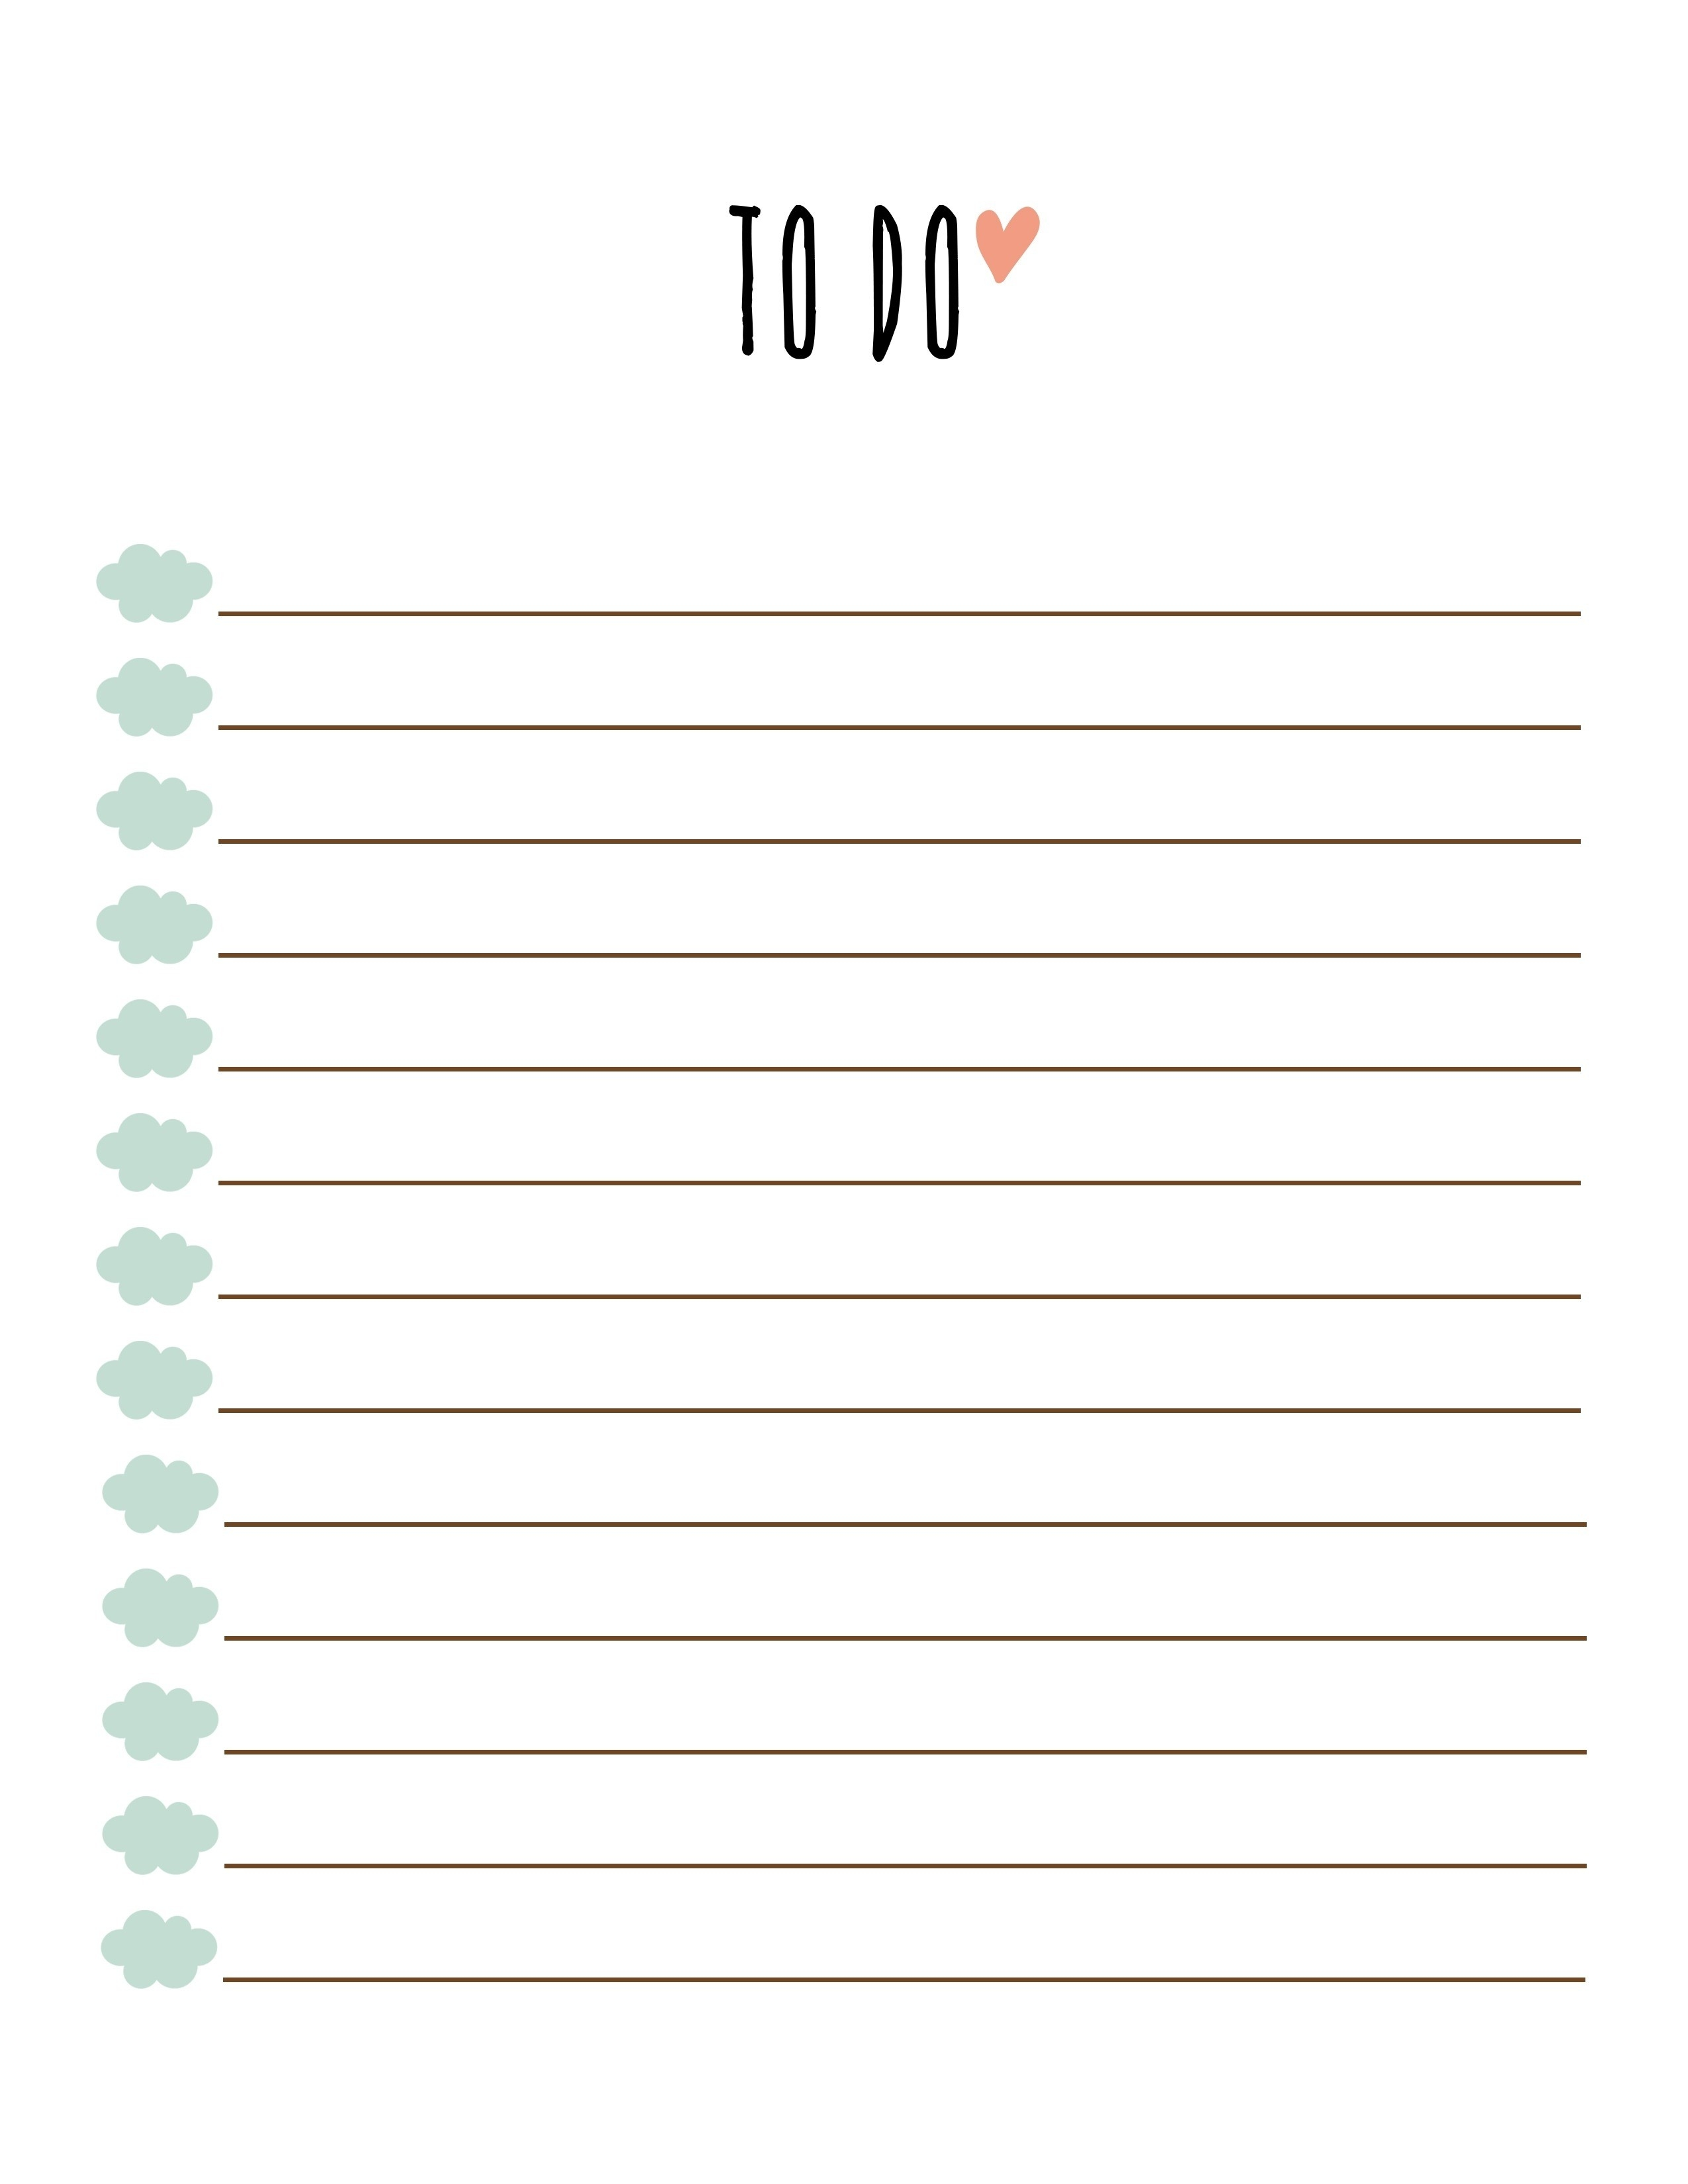 Free Printable To Do List Pdf | World Of Example in Free Printable To Do List Pdf 25463